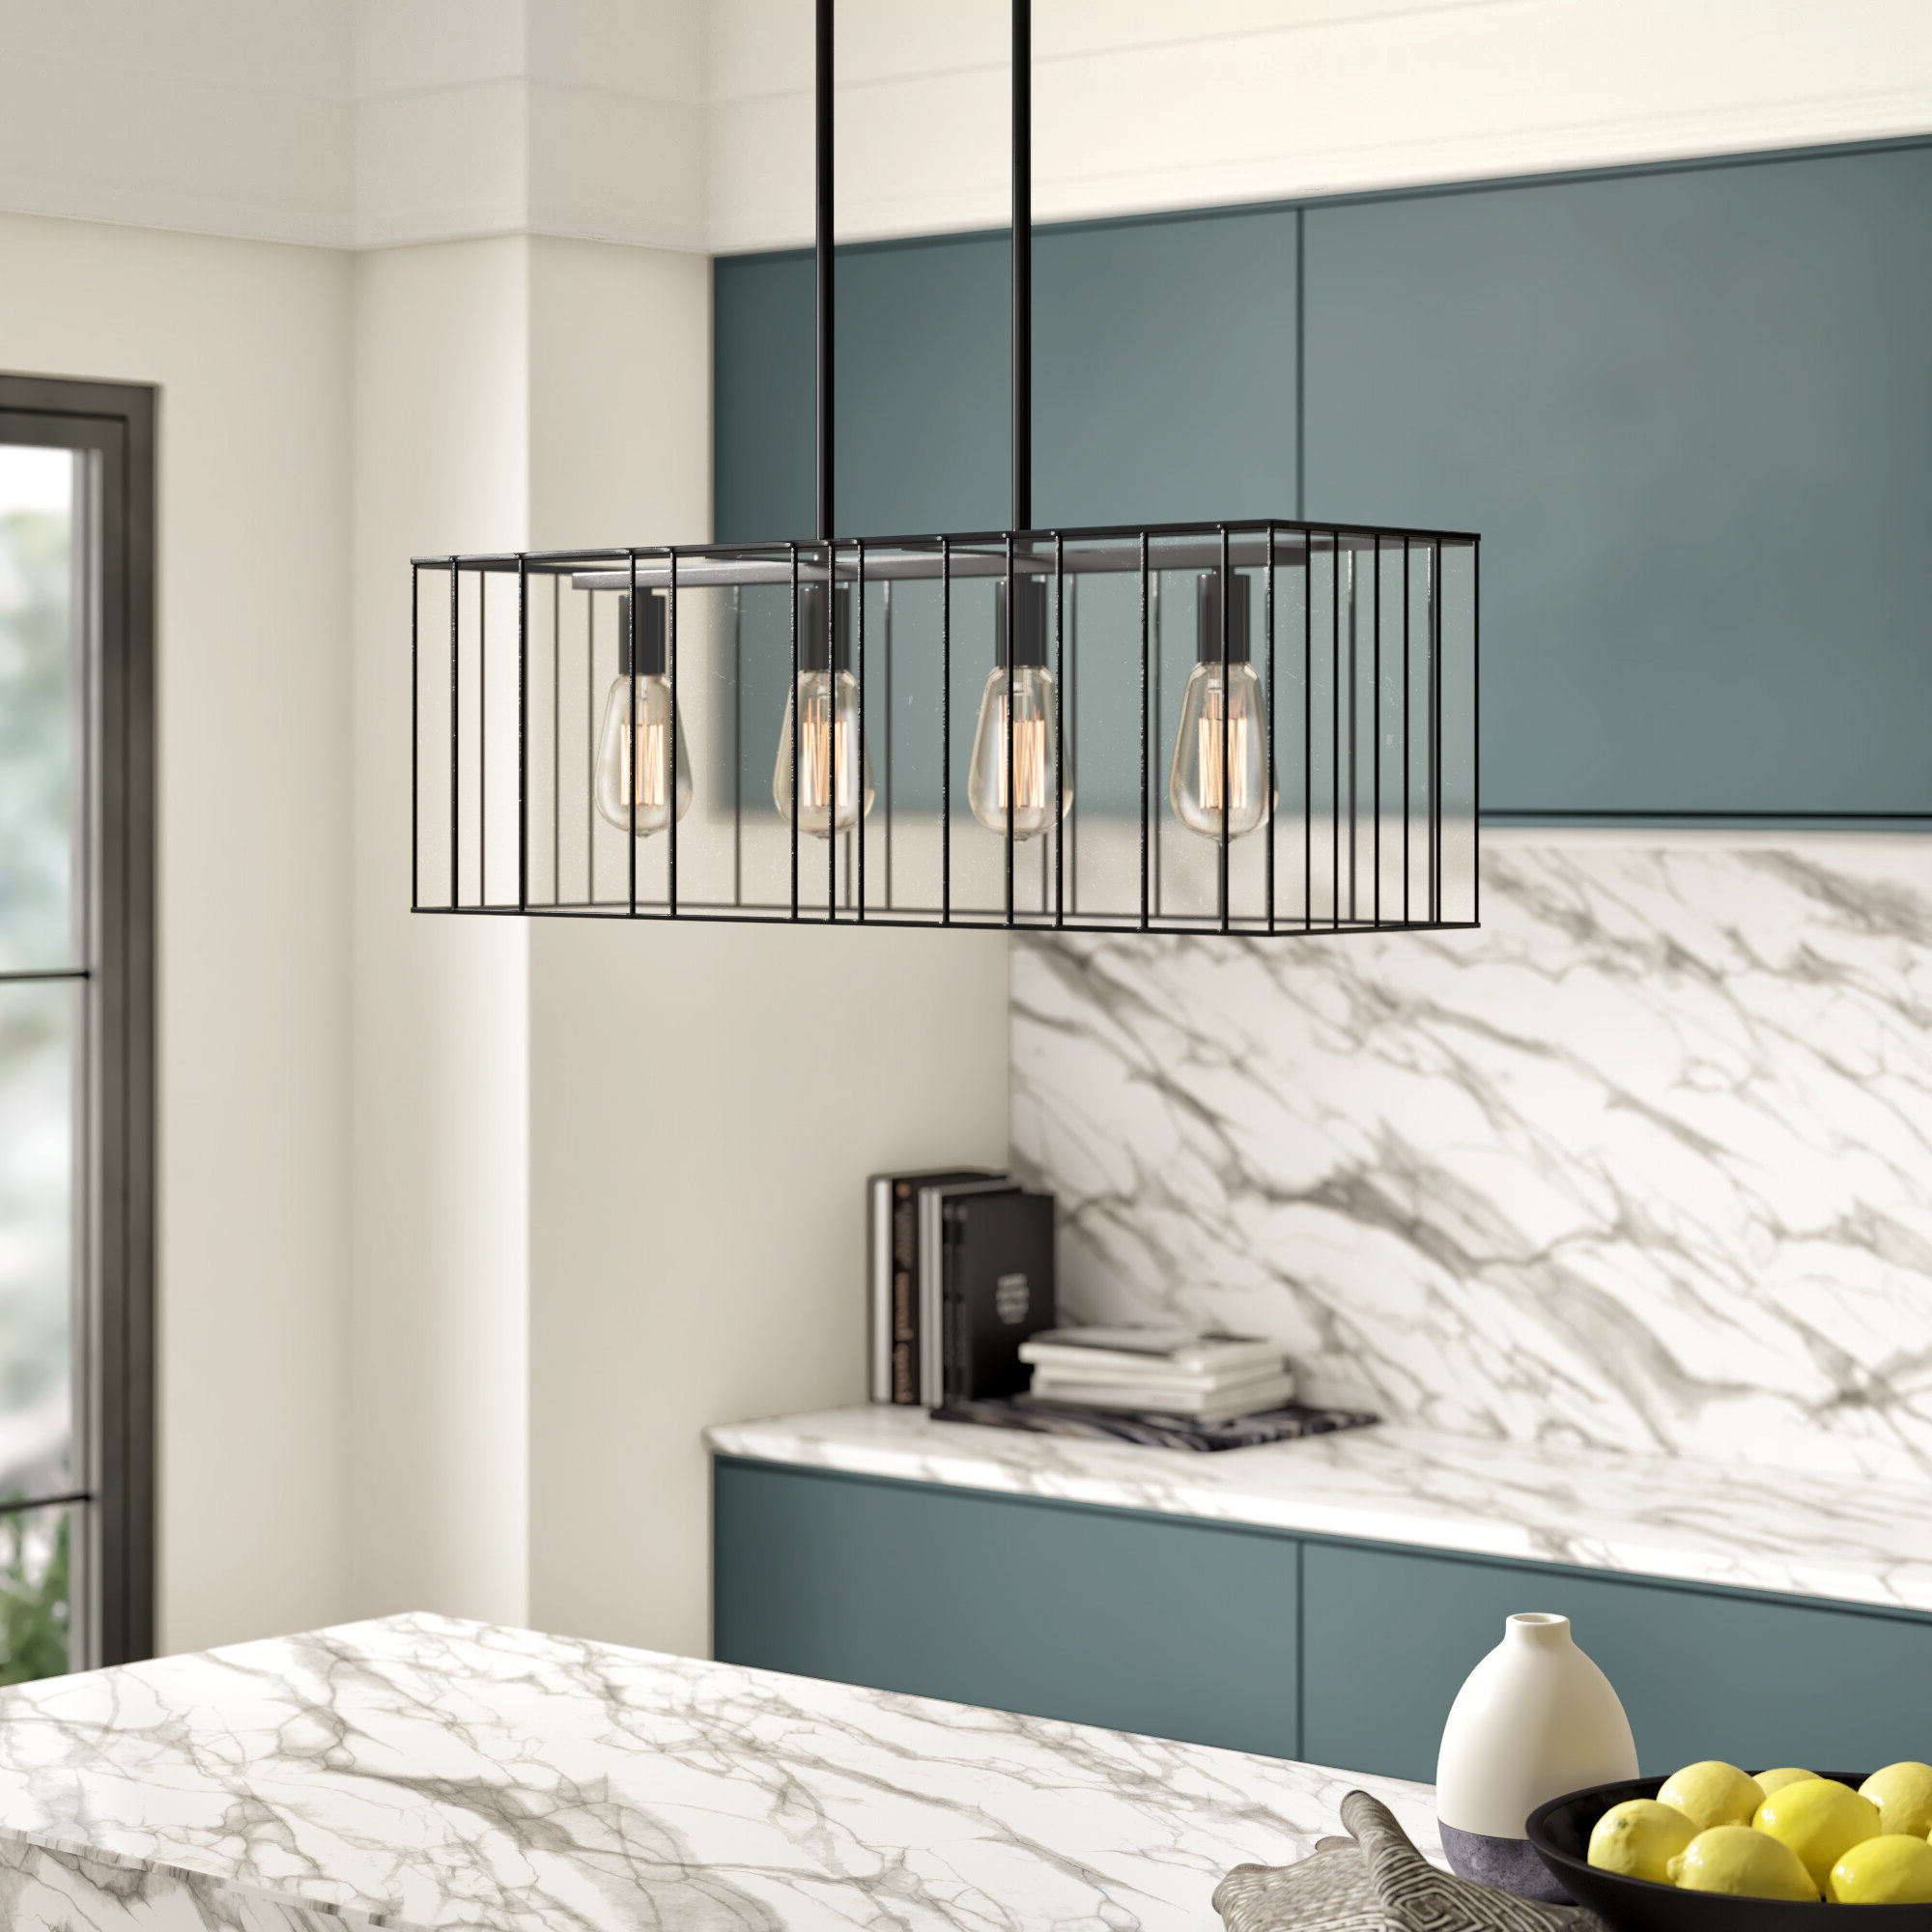 Byford 4 Light Kitchen Island Linear Pendant Intended For 2019 Odie 8 Light Kitchen Island Square / Rectangle Pendants (Gallery 20 of 20)